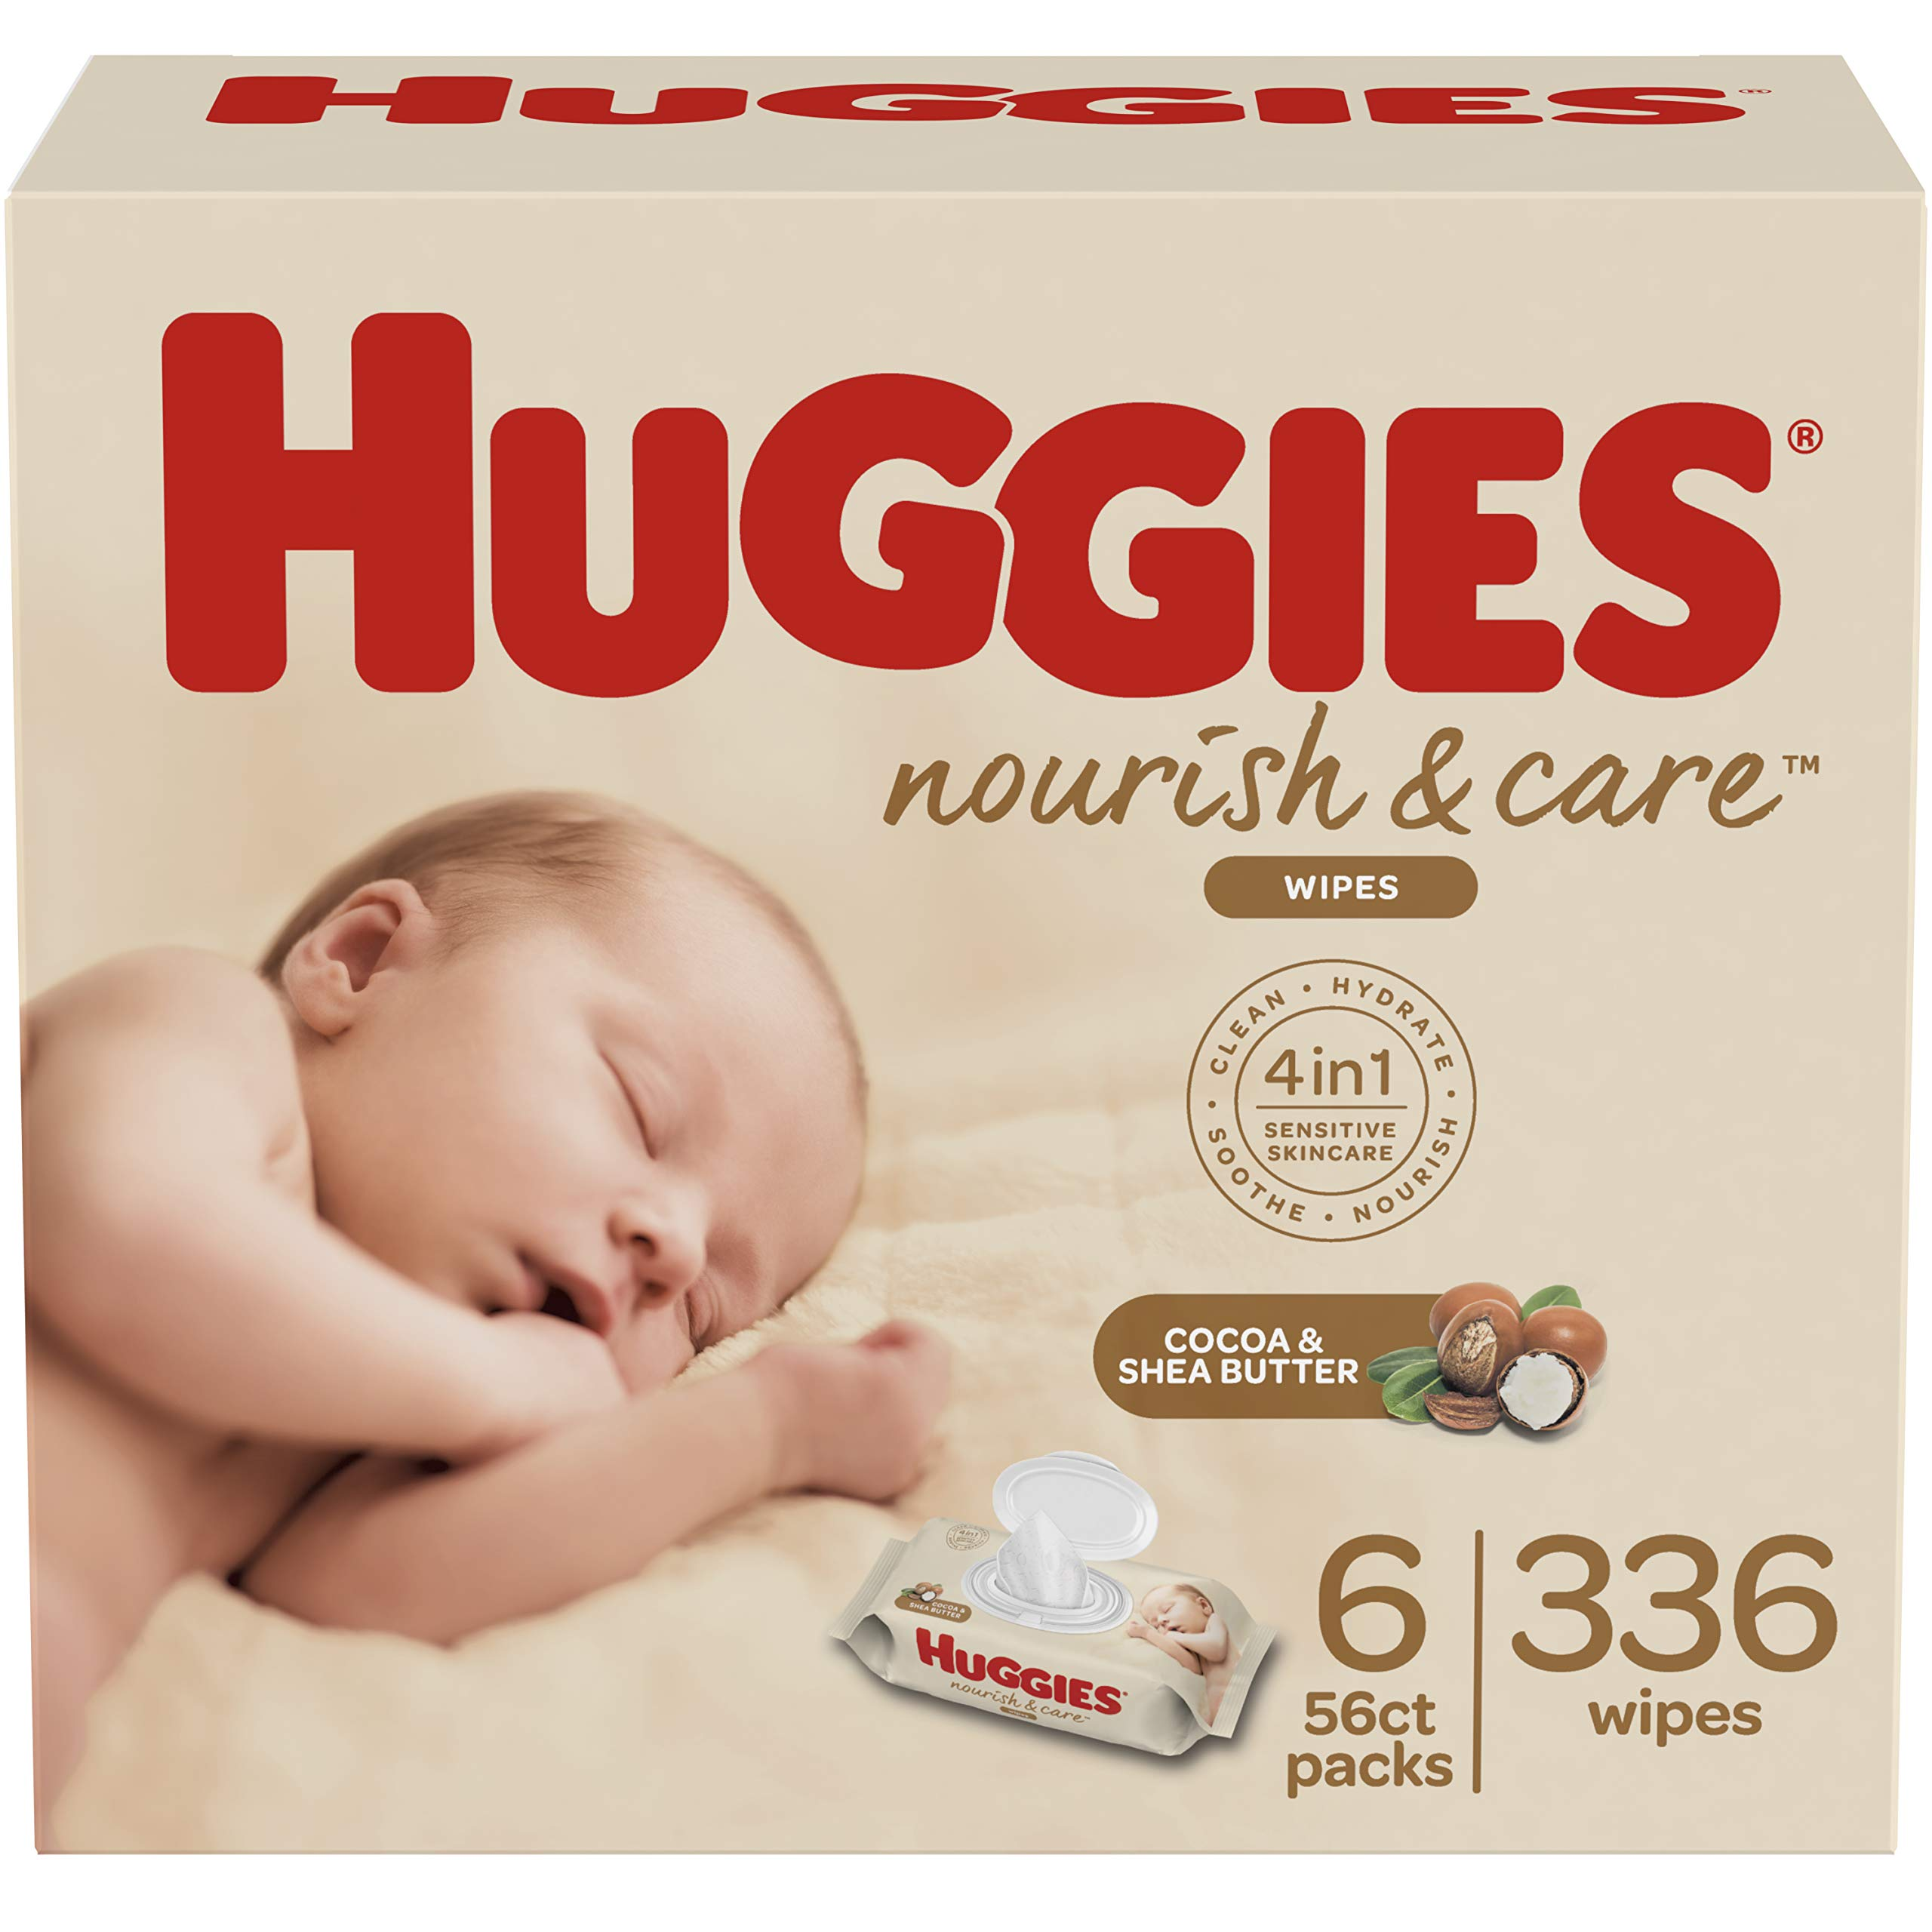 Huggies Nourish & Care Baby Wipes, Sensitive Skincare, Scented, 6 Flip-Top Packs, 56 Count (336 Wipes Total) by HUGGIES